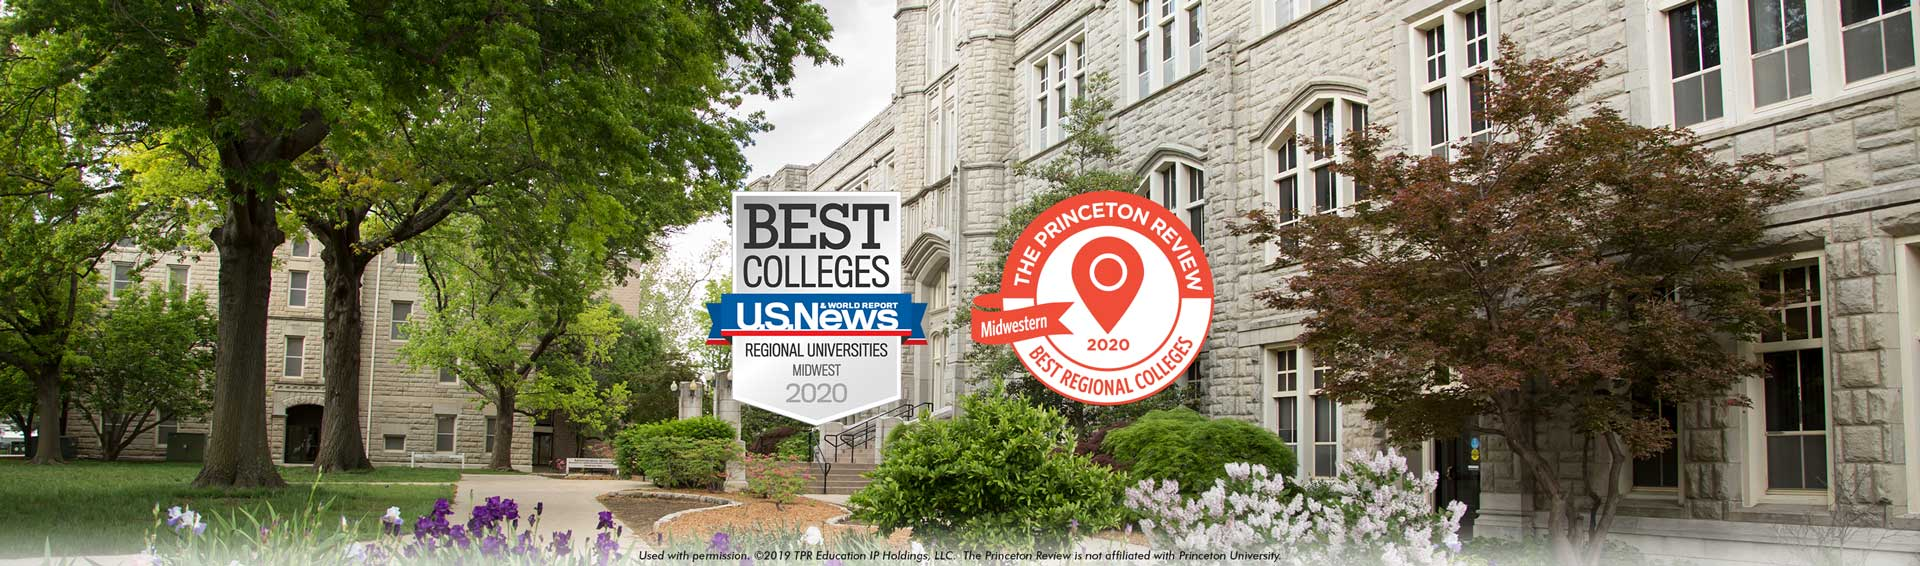 U.S. News & World Report Best Colleges - Regional Universities Midwest 2020 badge and Princeton Review Ranking - UCM in the fall